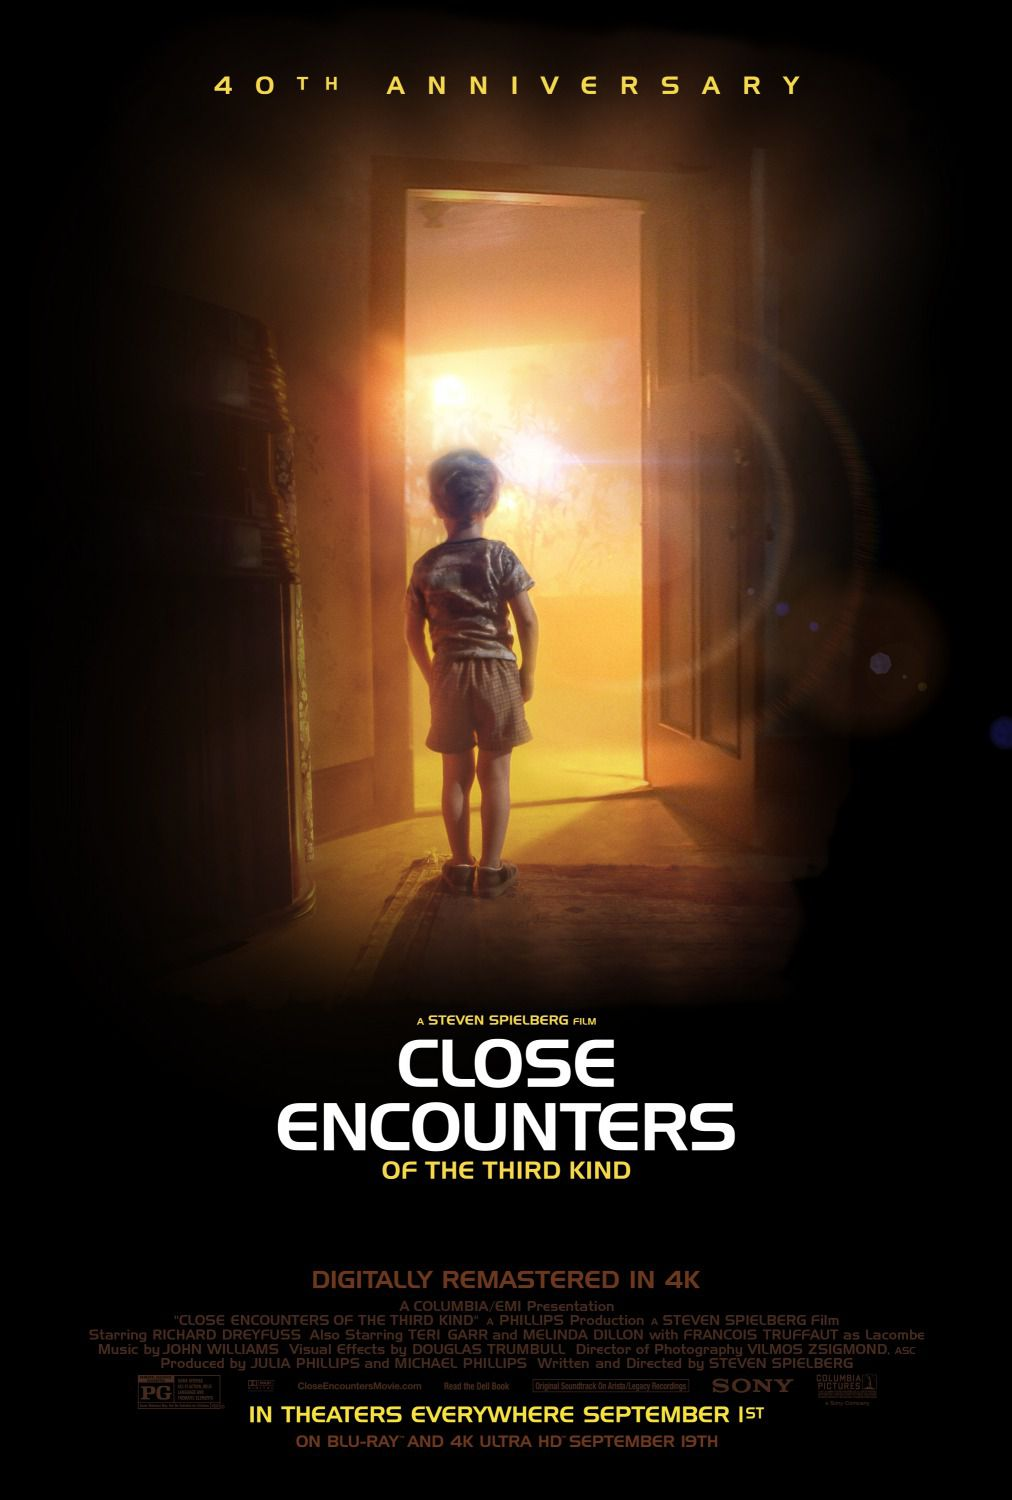 Close encounters of the third kind - Incontri ravvicinati del 3 tipo - 40th anniversary - film poster